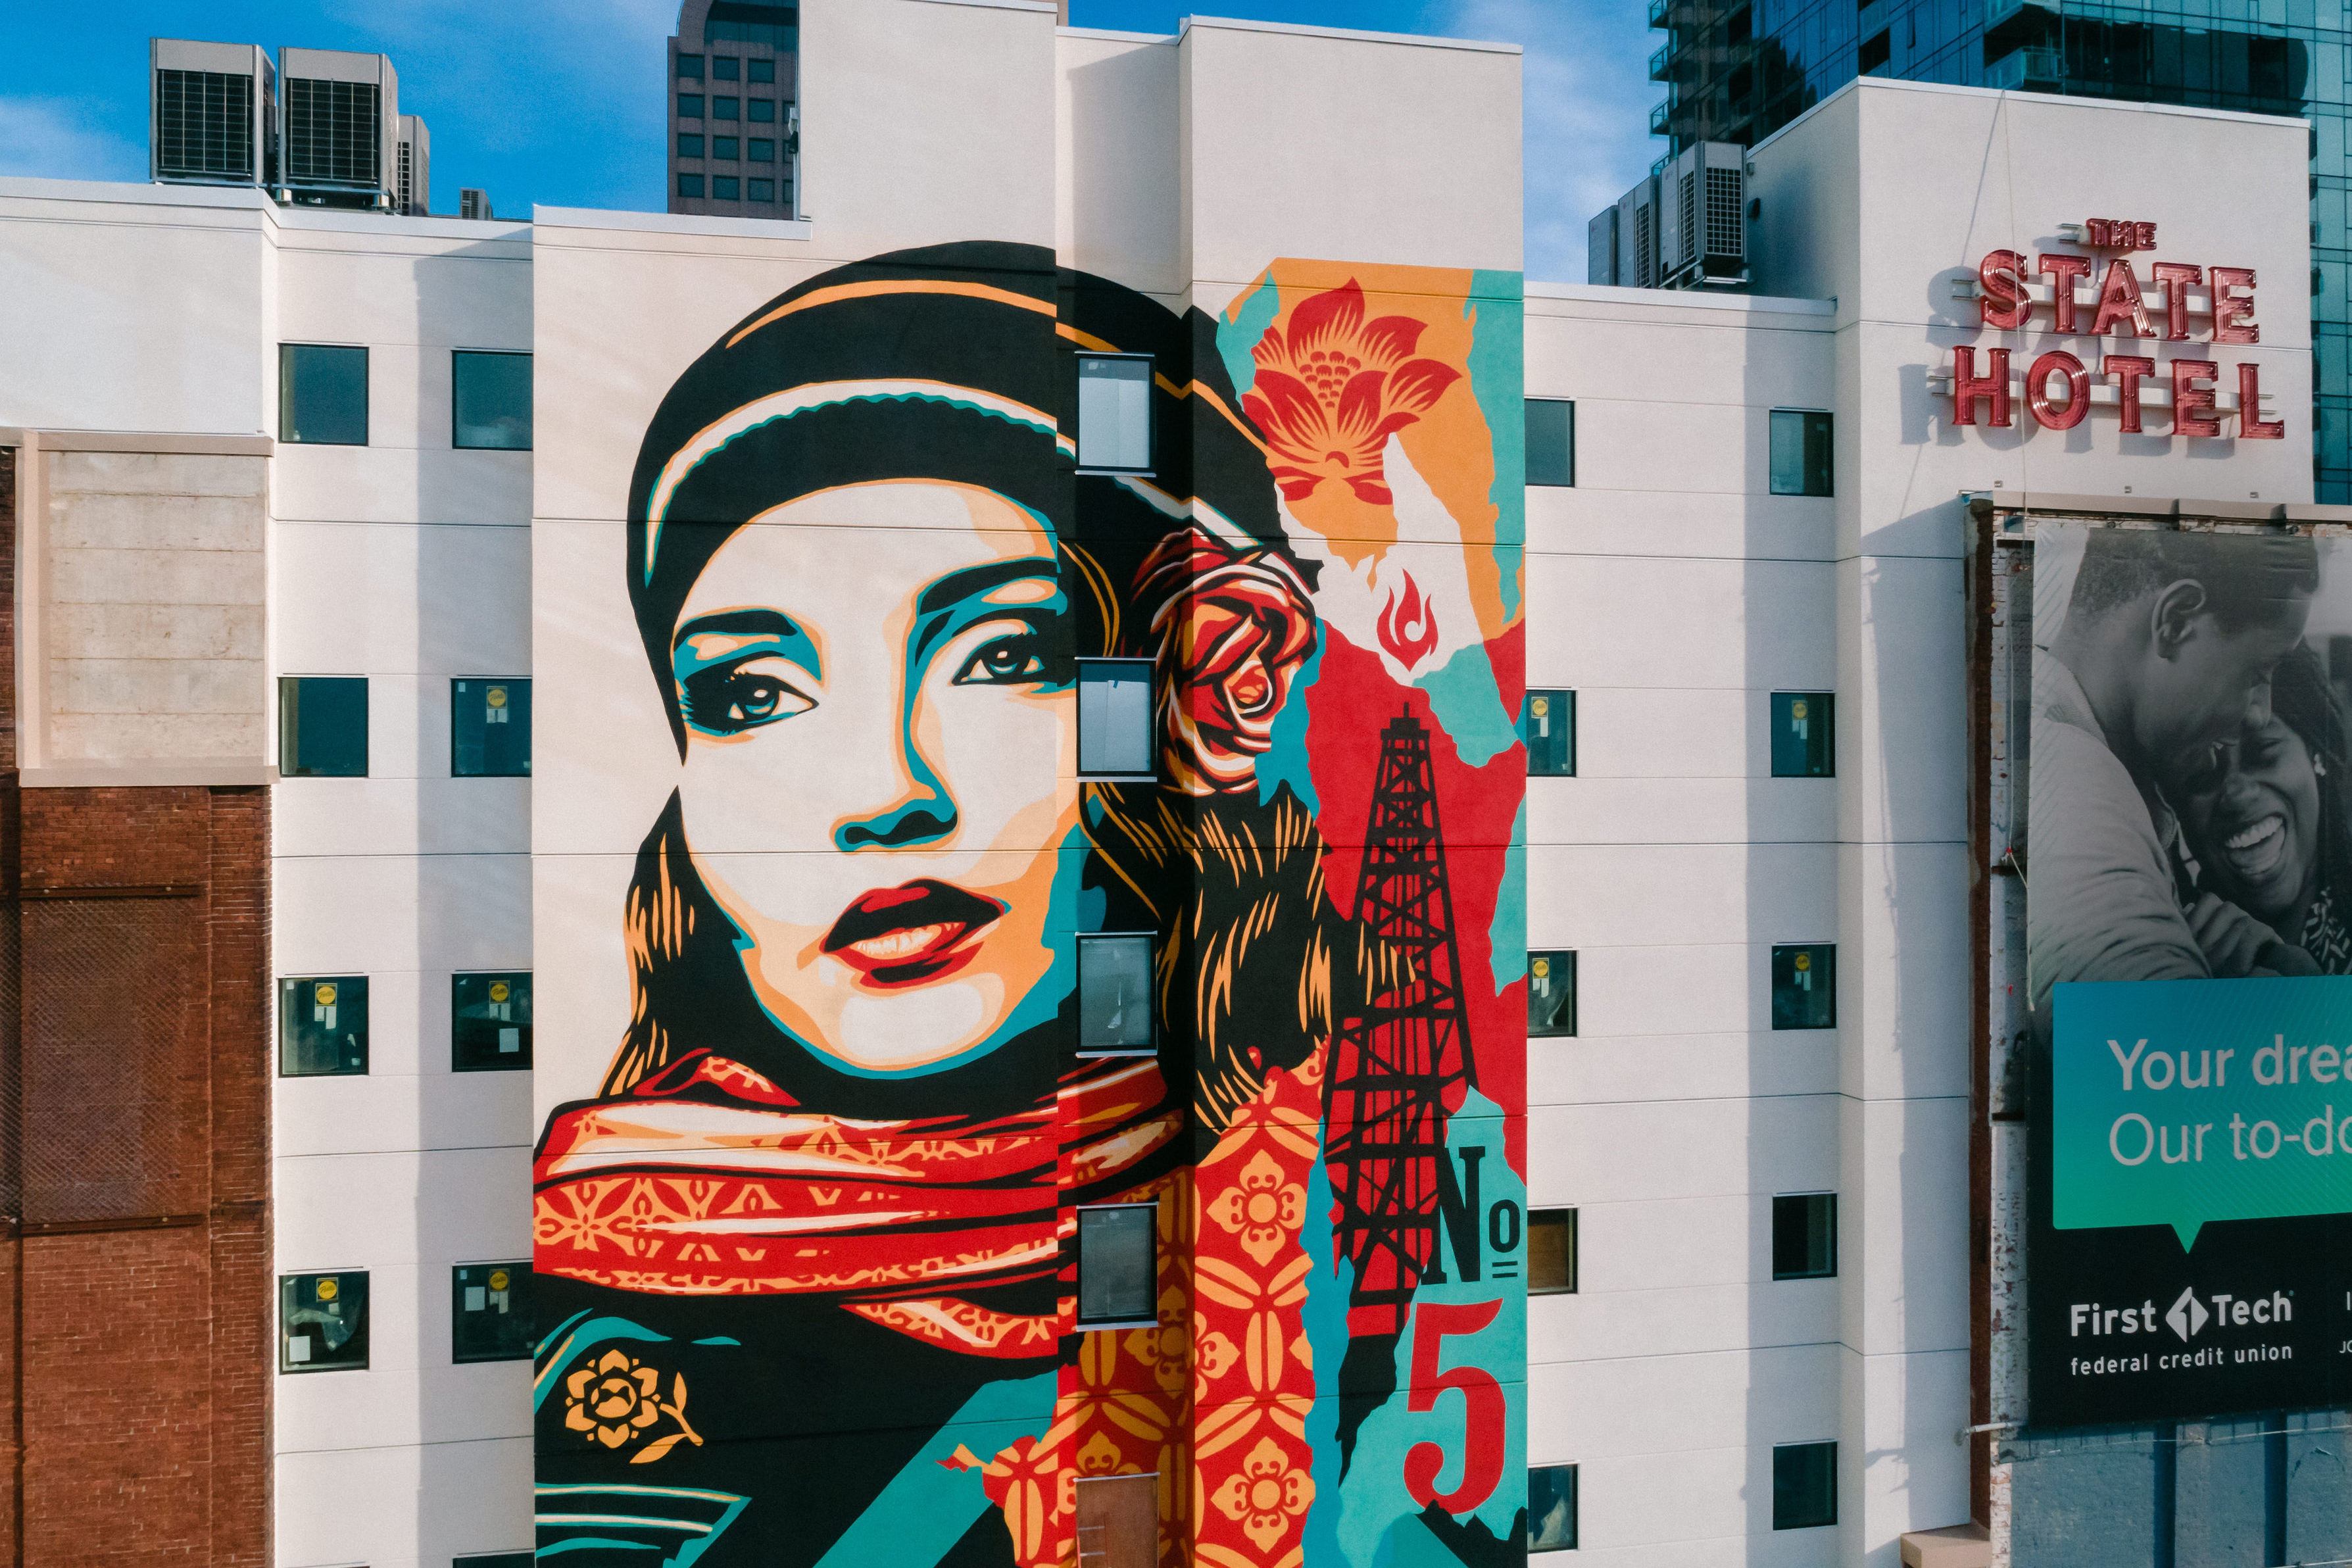 State Hotel Mural